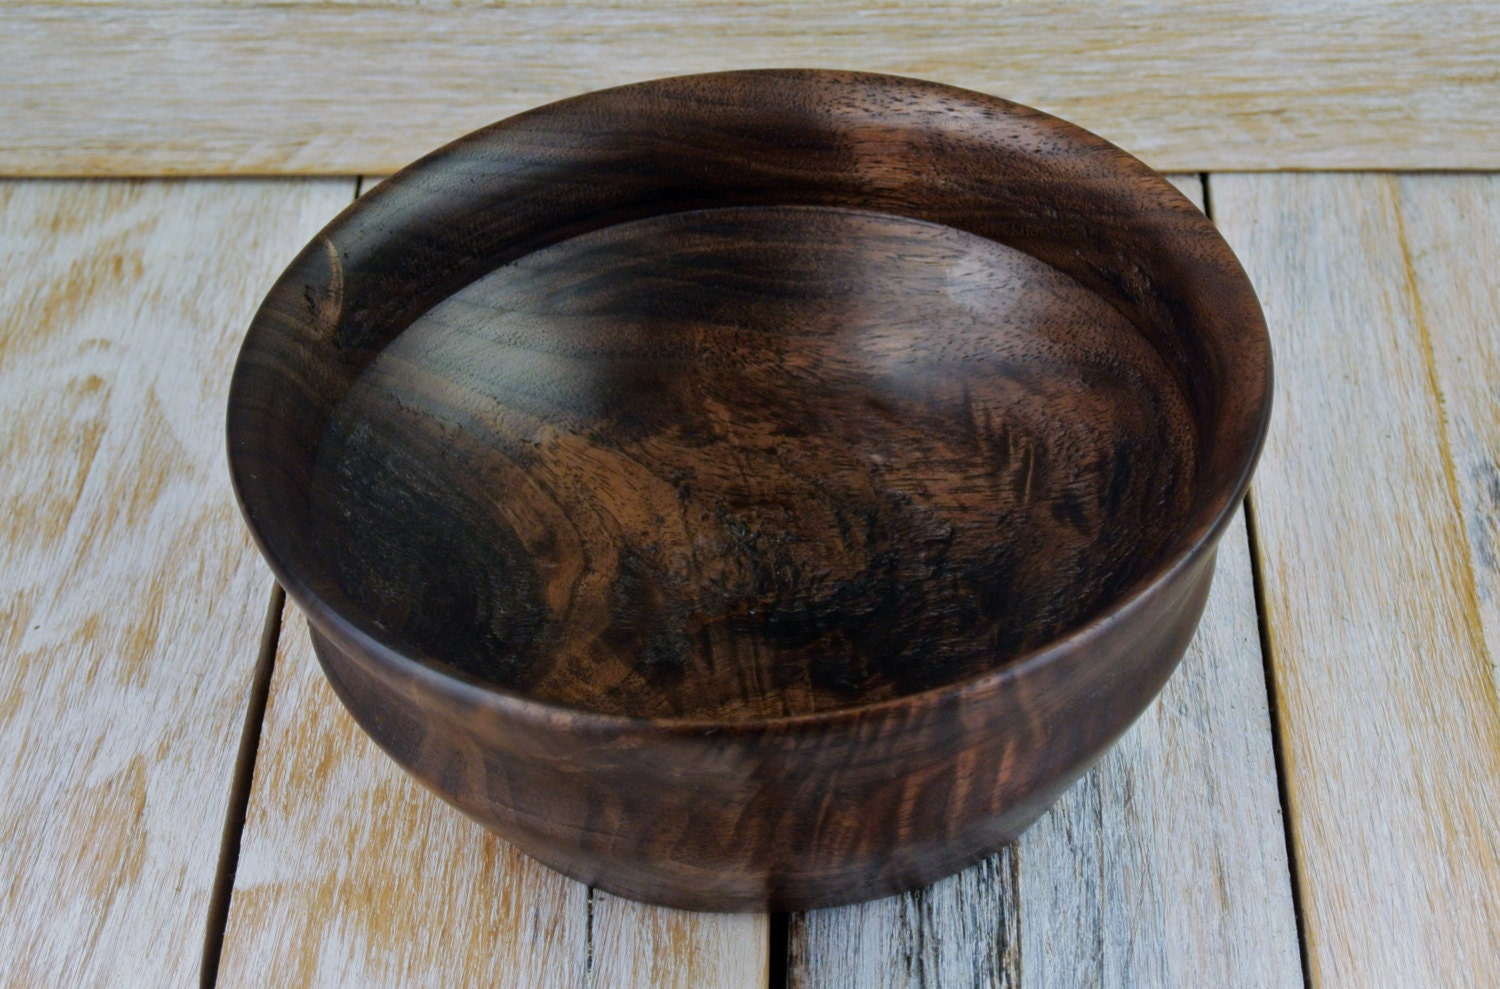 Wooden centerpiece bowl figured black walnut wood carving